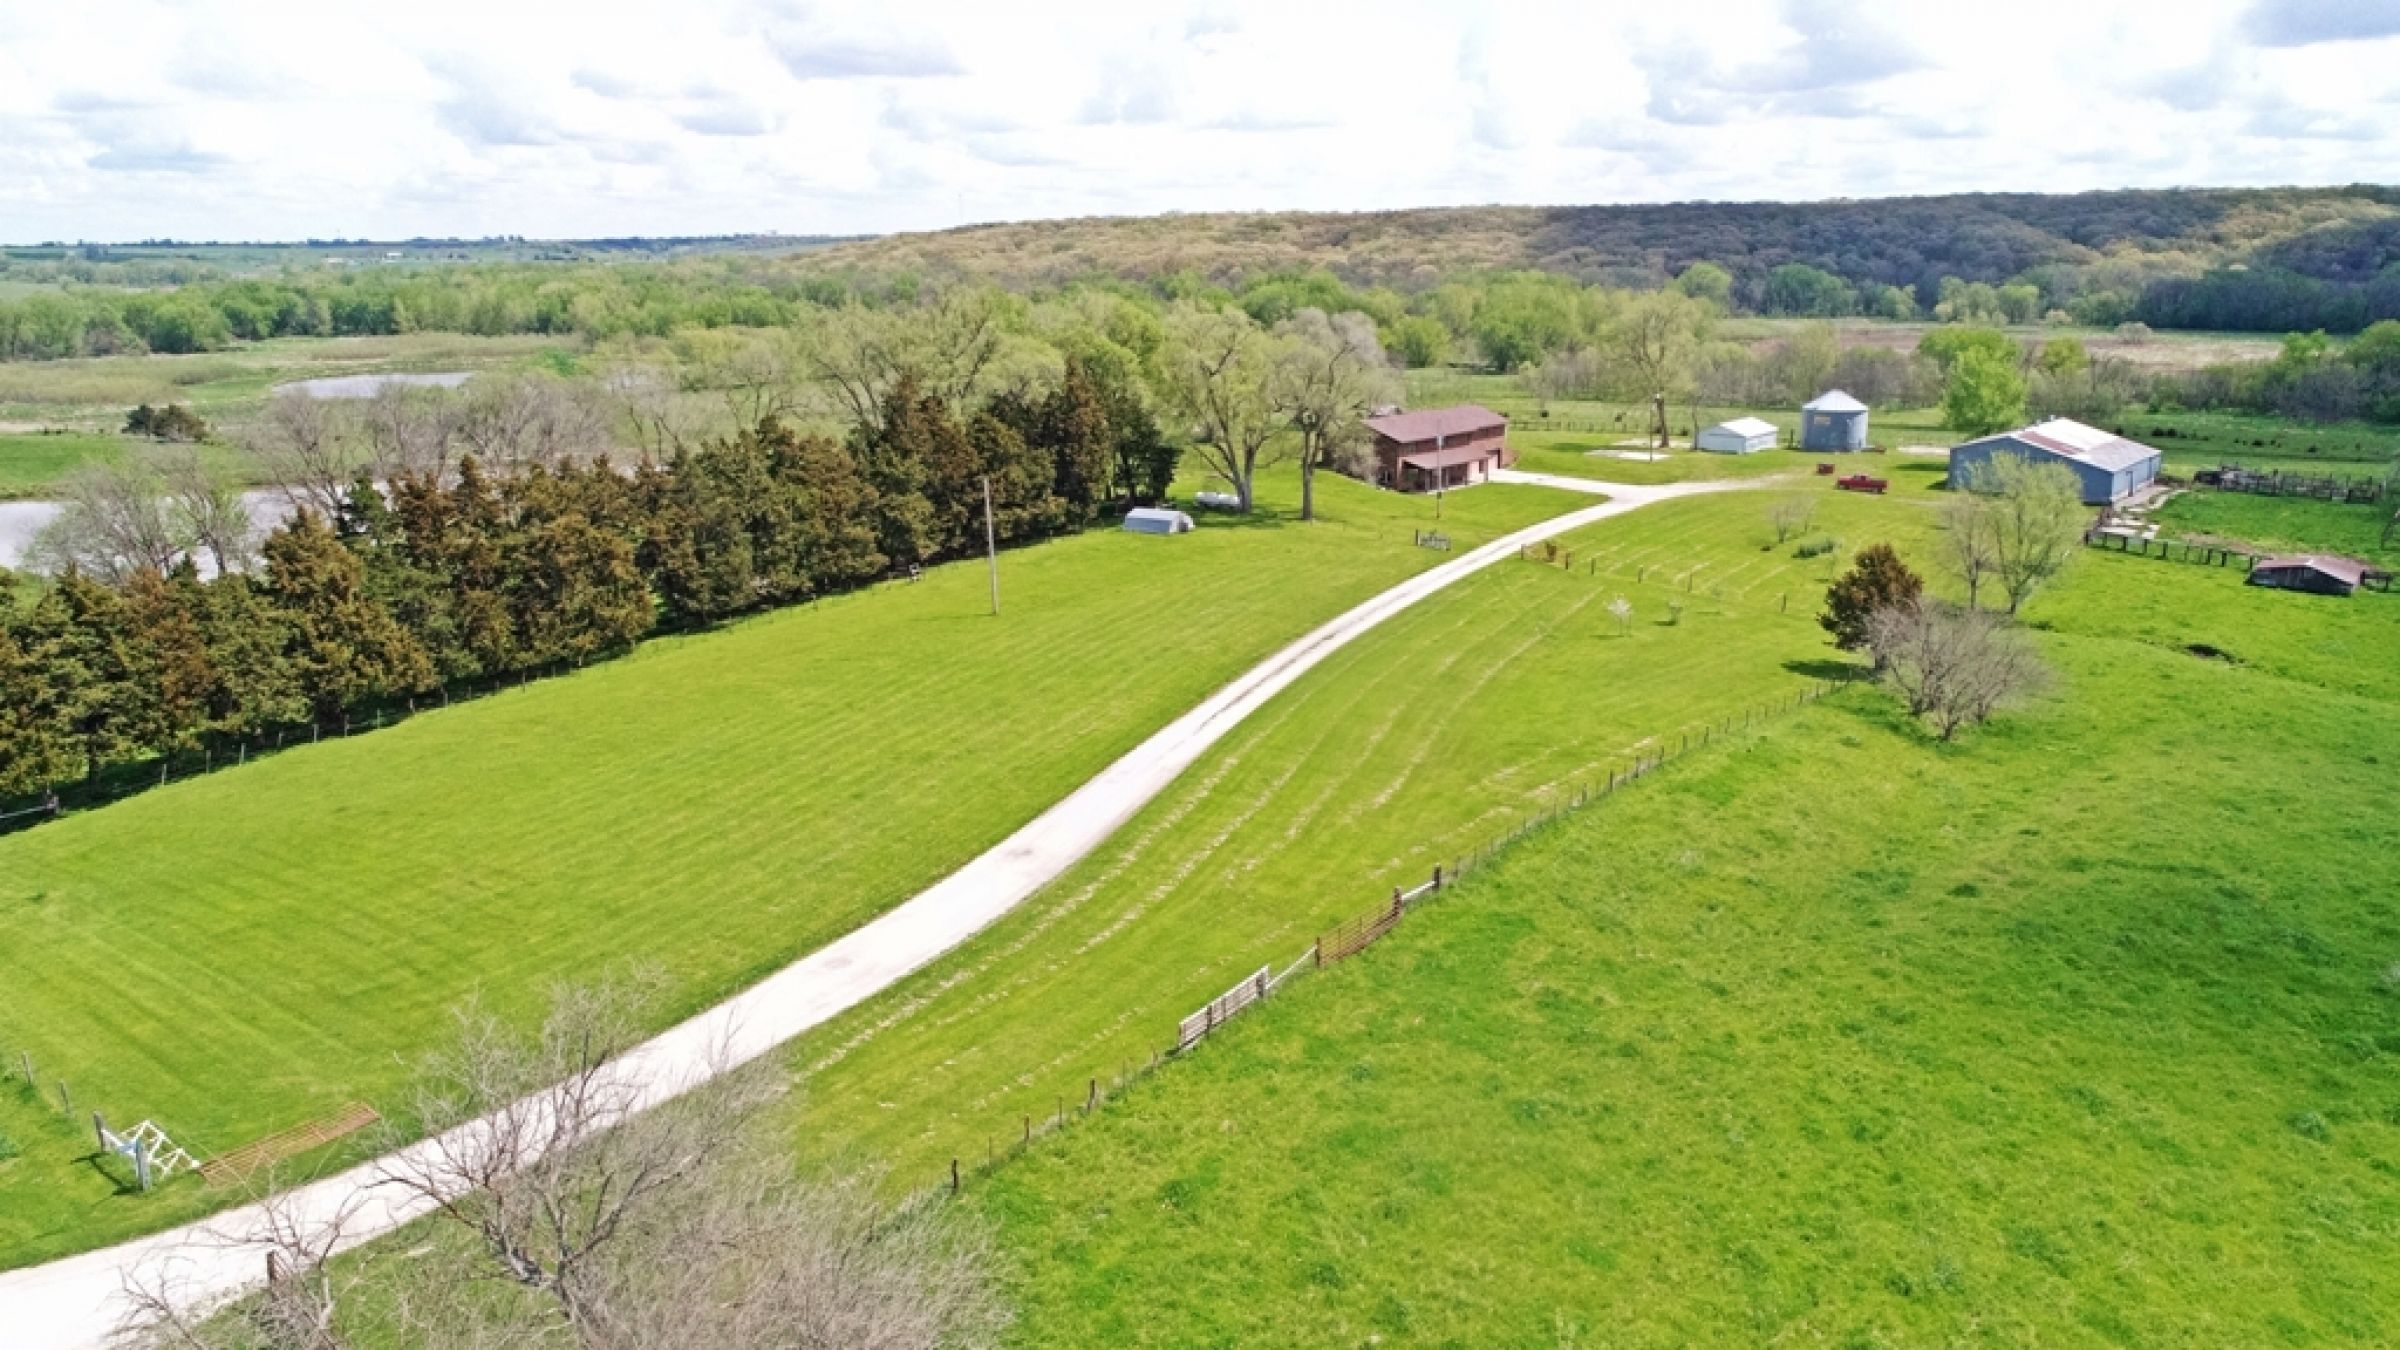 residential-lucas-county-iowa-60-acres-listing-number-14939-0-2020-05-07-163347.JPG